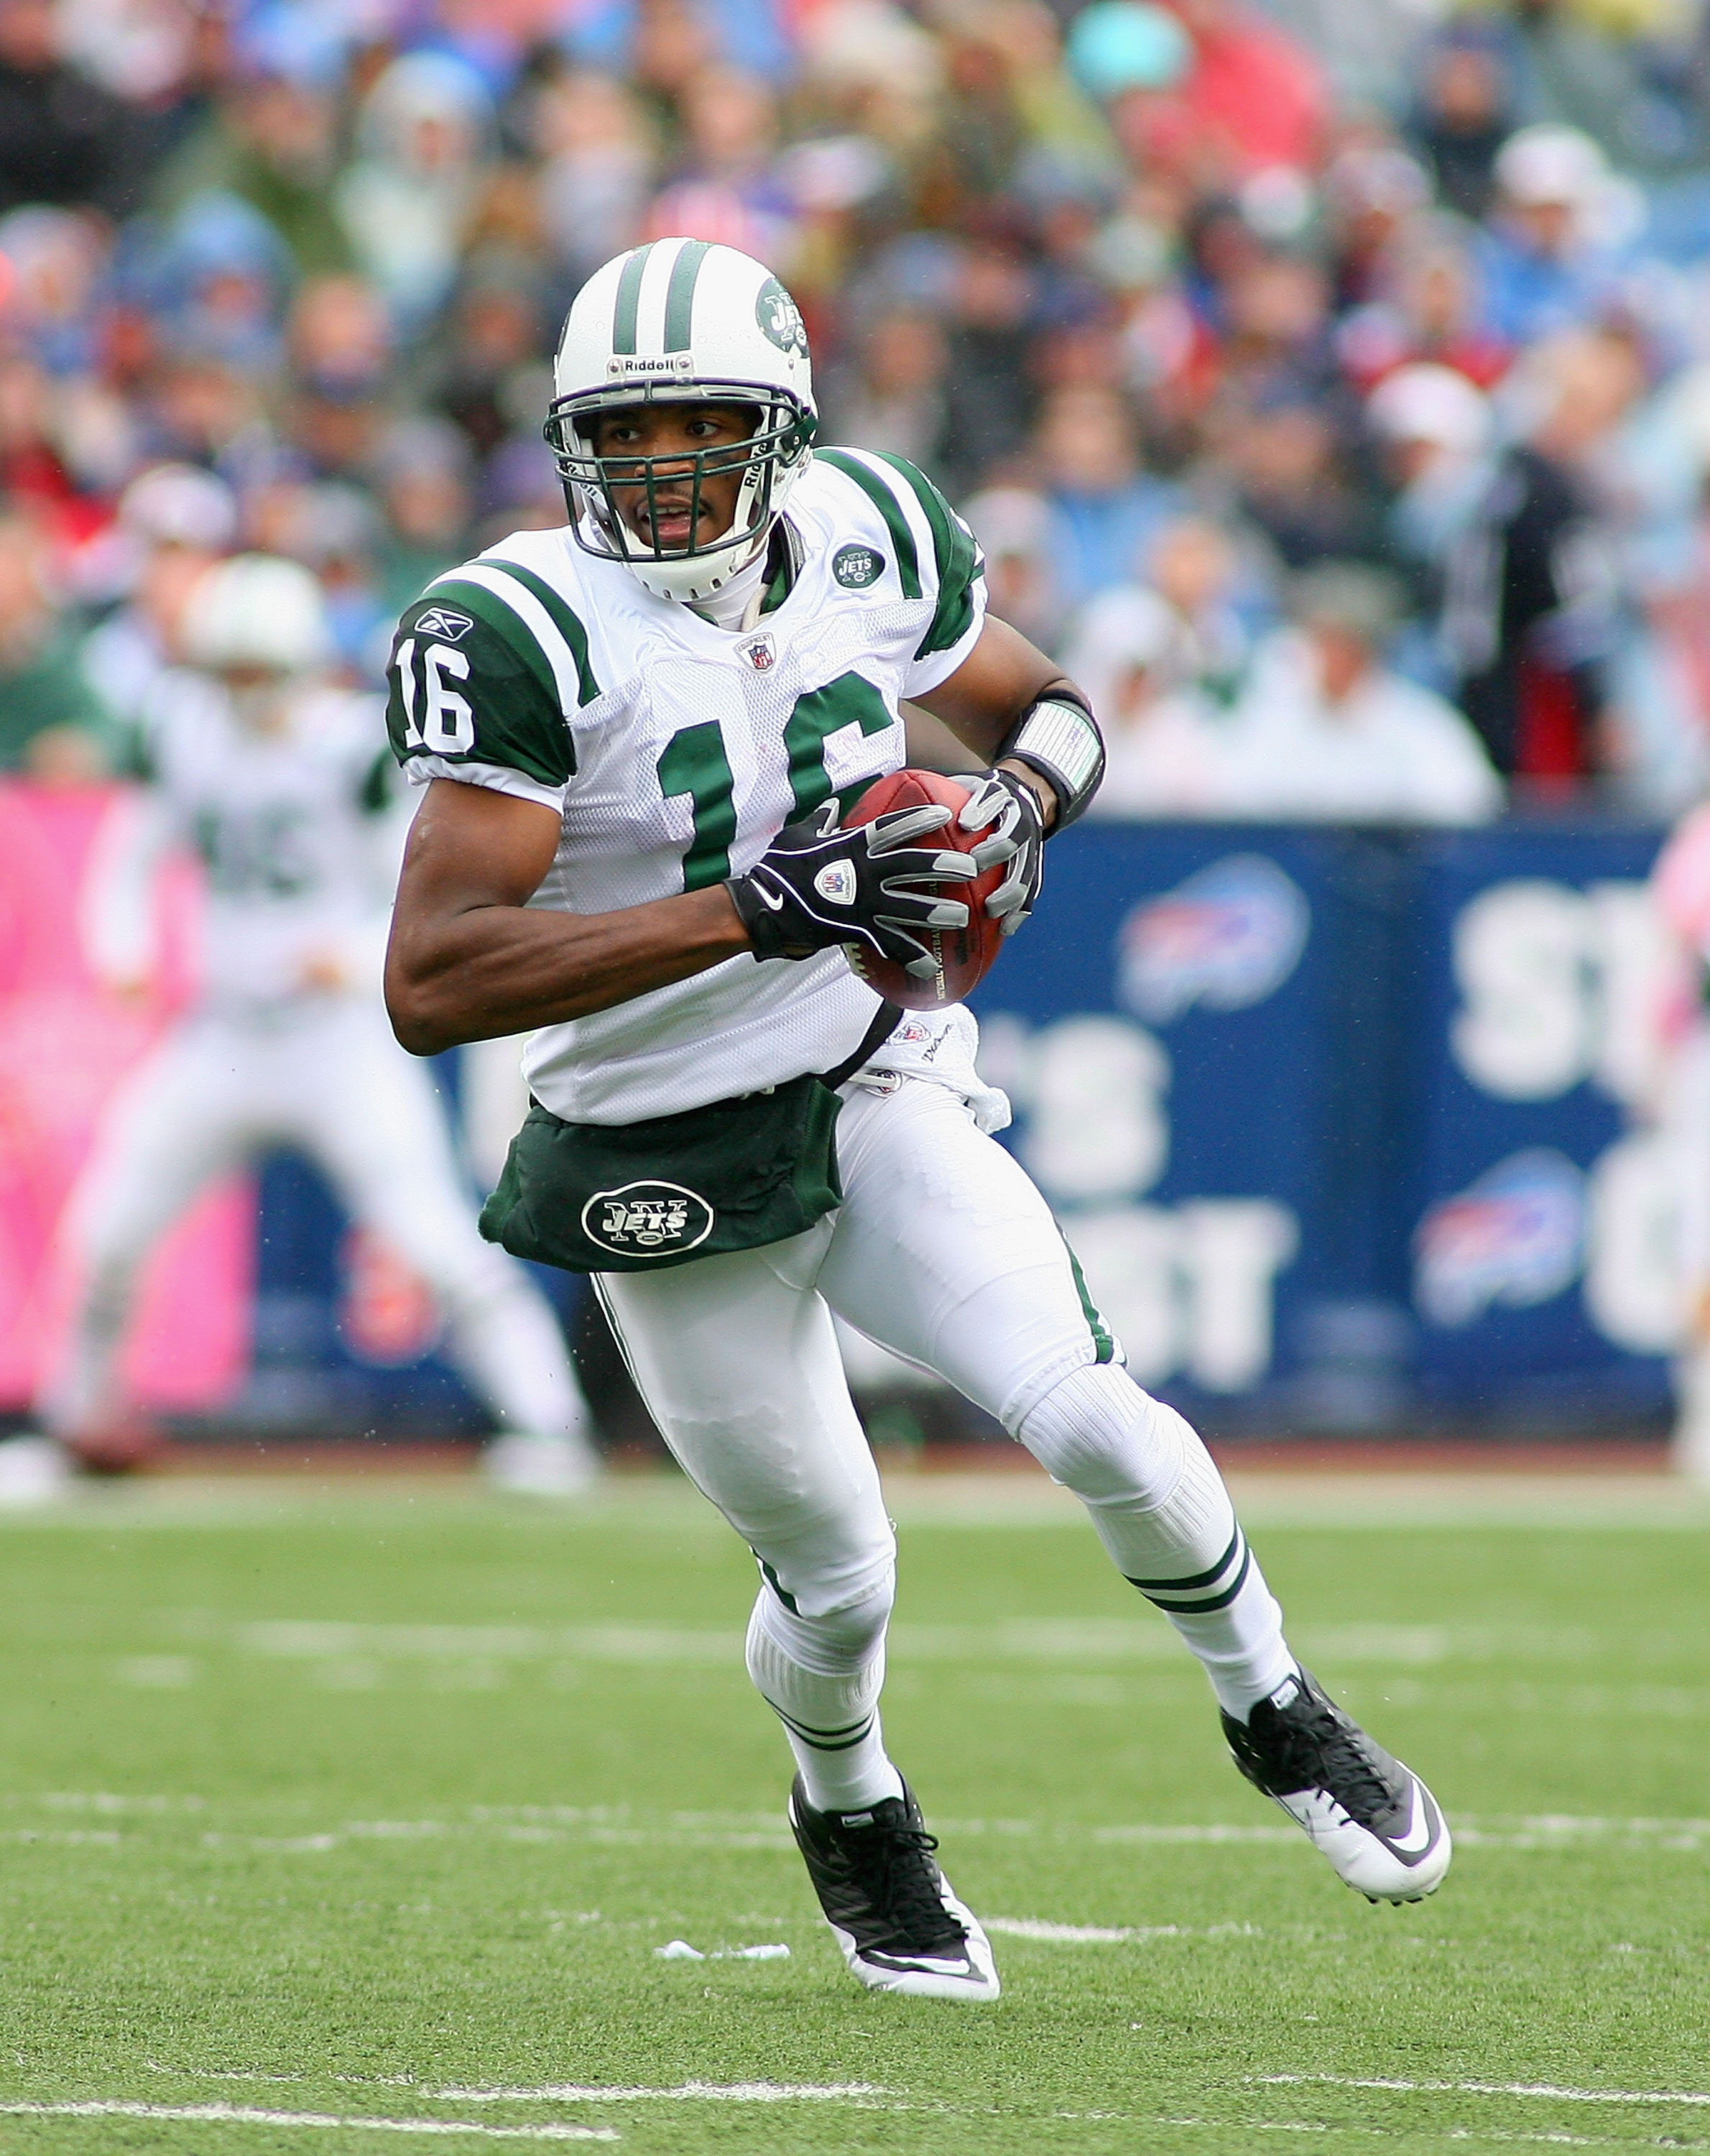 ORCHARD PARK, NY - OCTOBER 03:  Brad Smith #16 of the New York Jets runs against the Buffalo Bills at Ralph Wilson Stadium on October 3, 2010 in Orchard Park, New York. The Jets won 38-14.  (Photo by Rick Stewart/Getty Images)